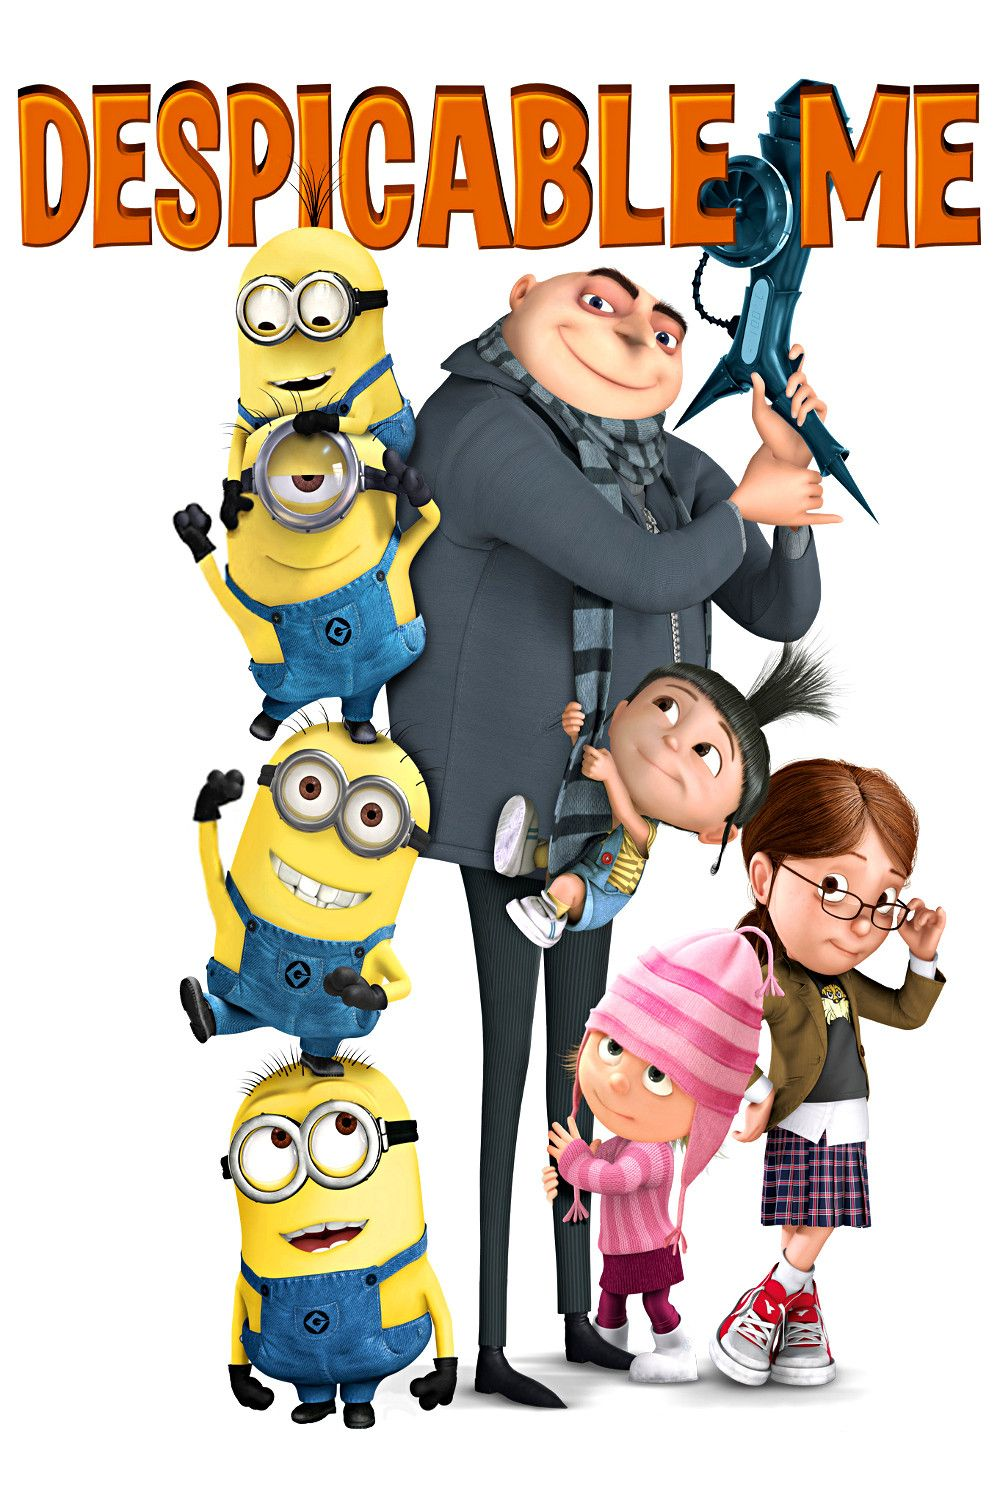 Despicable Me Despicable Me Kids Movies Cartoon Movies